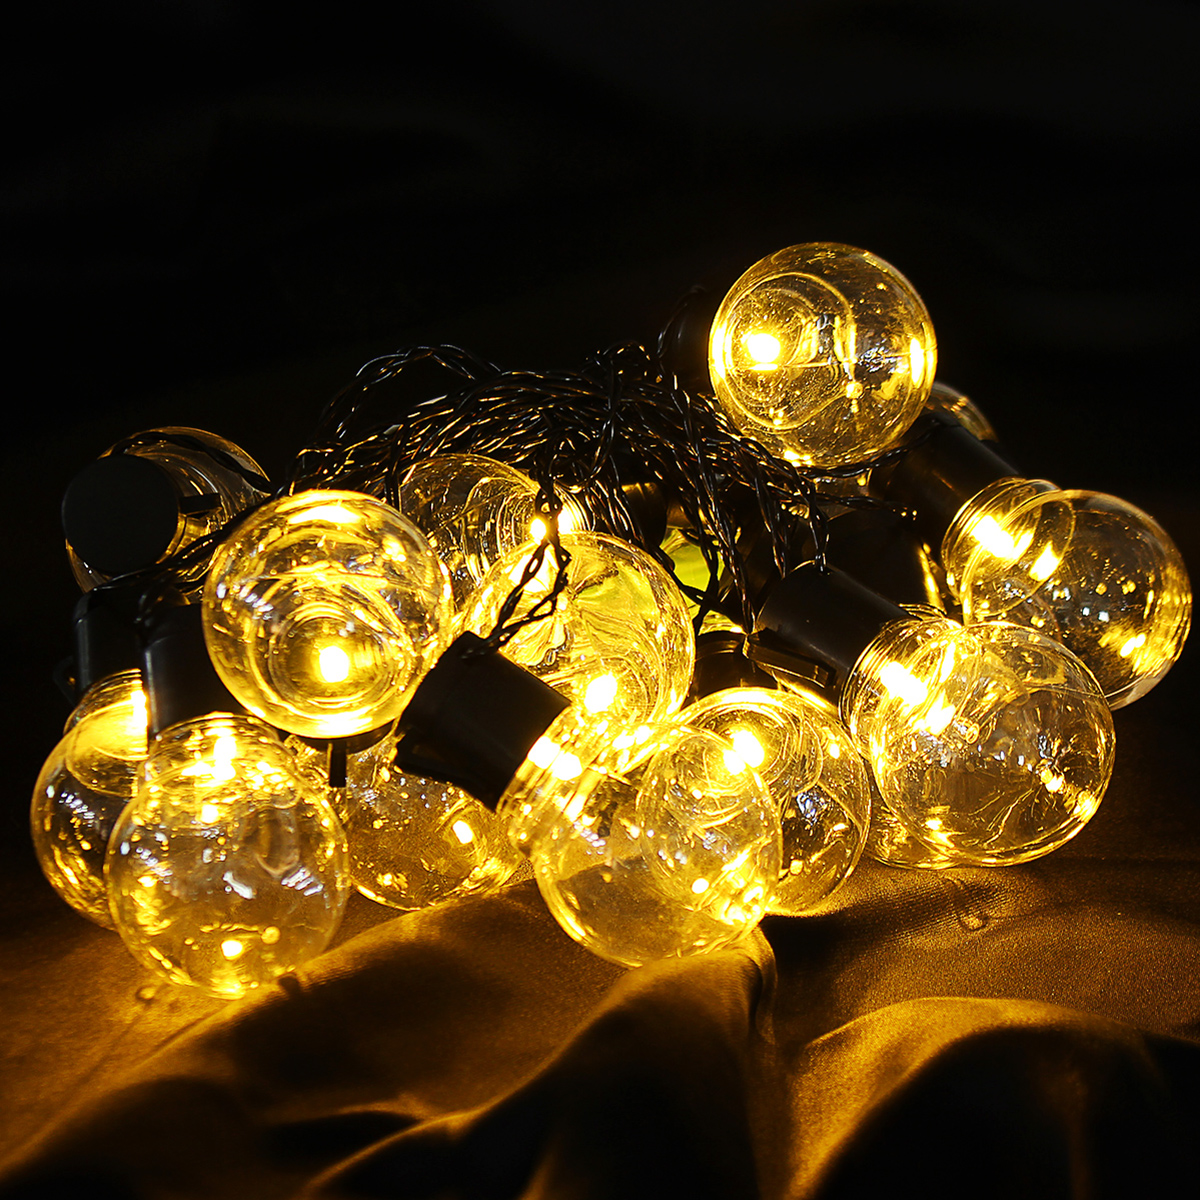 2.5M 5M AC220V Outdoor Waterproof Warm White LED Globe Bulb String Light for Patio Garden Home Decor